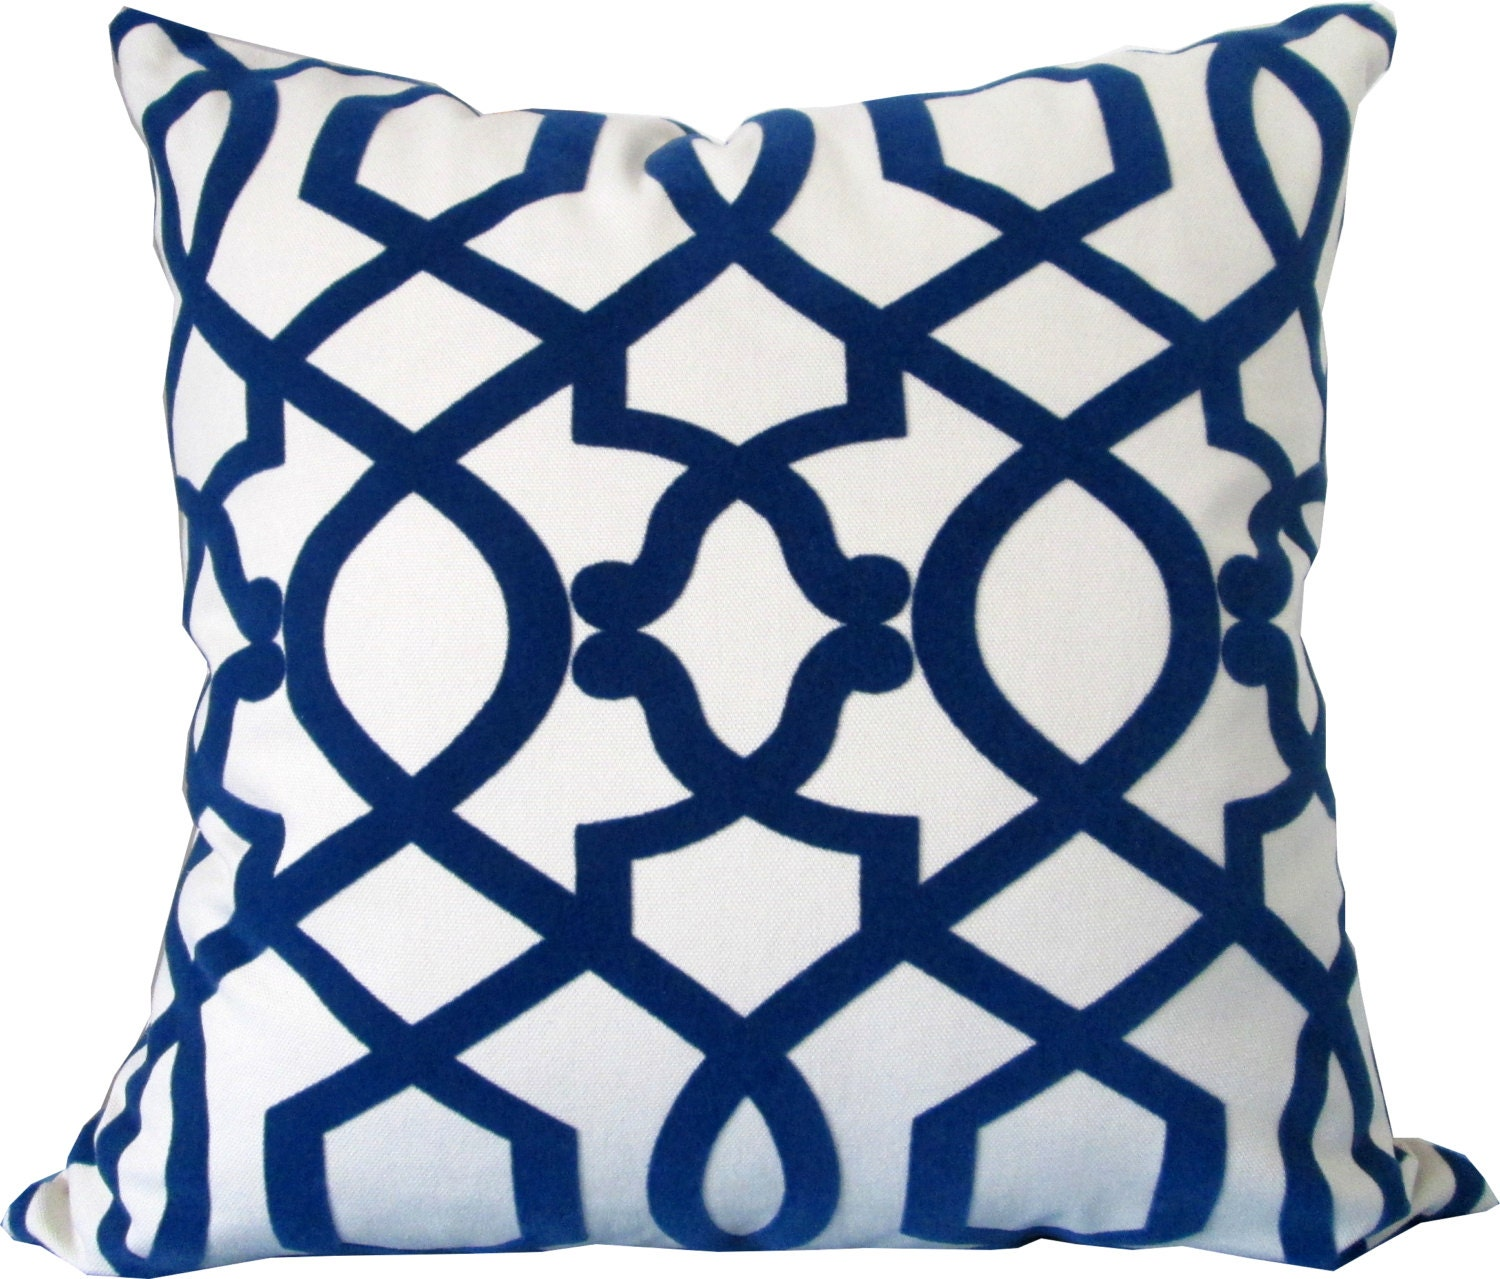 Designer Decorative Pillow Cover-Royal Blue and Ivory Flocked